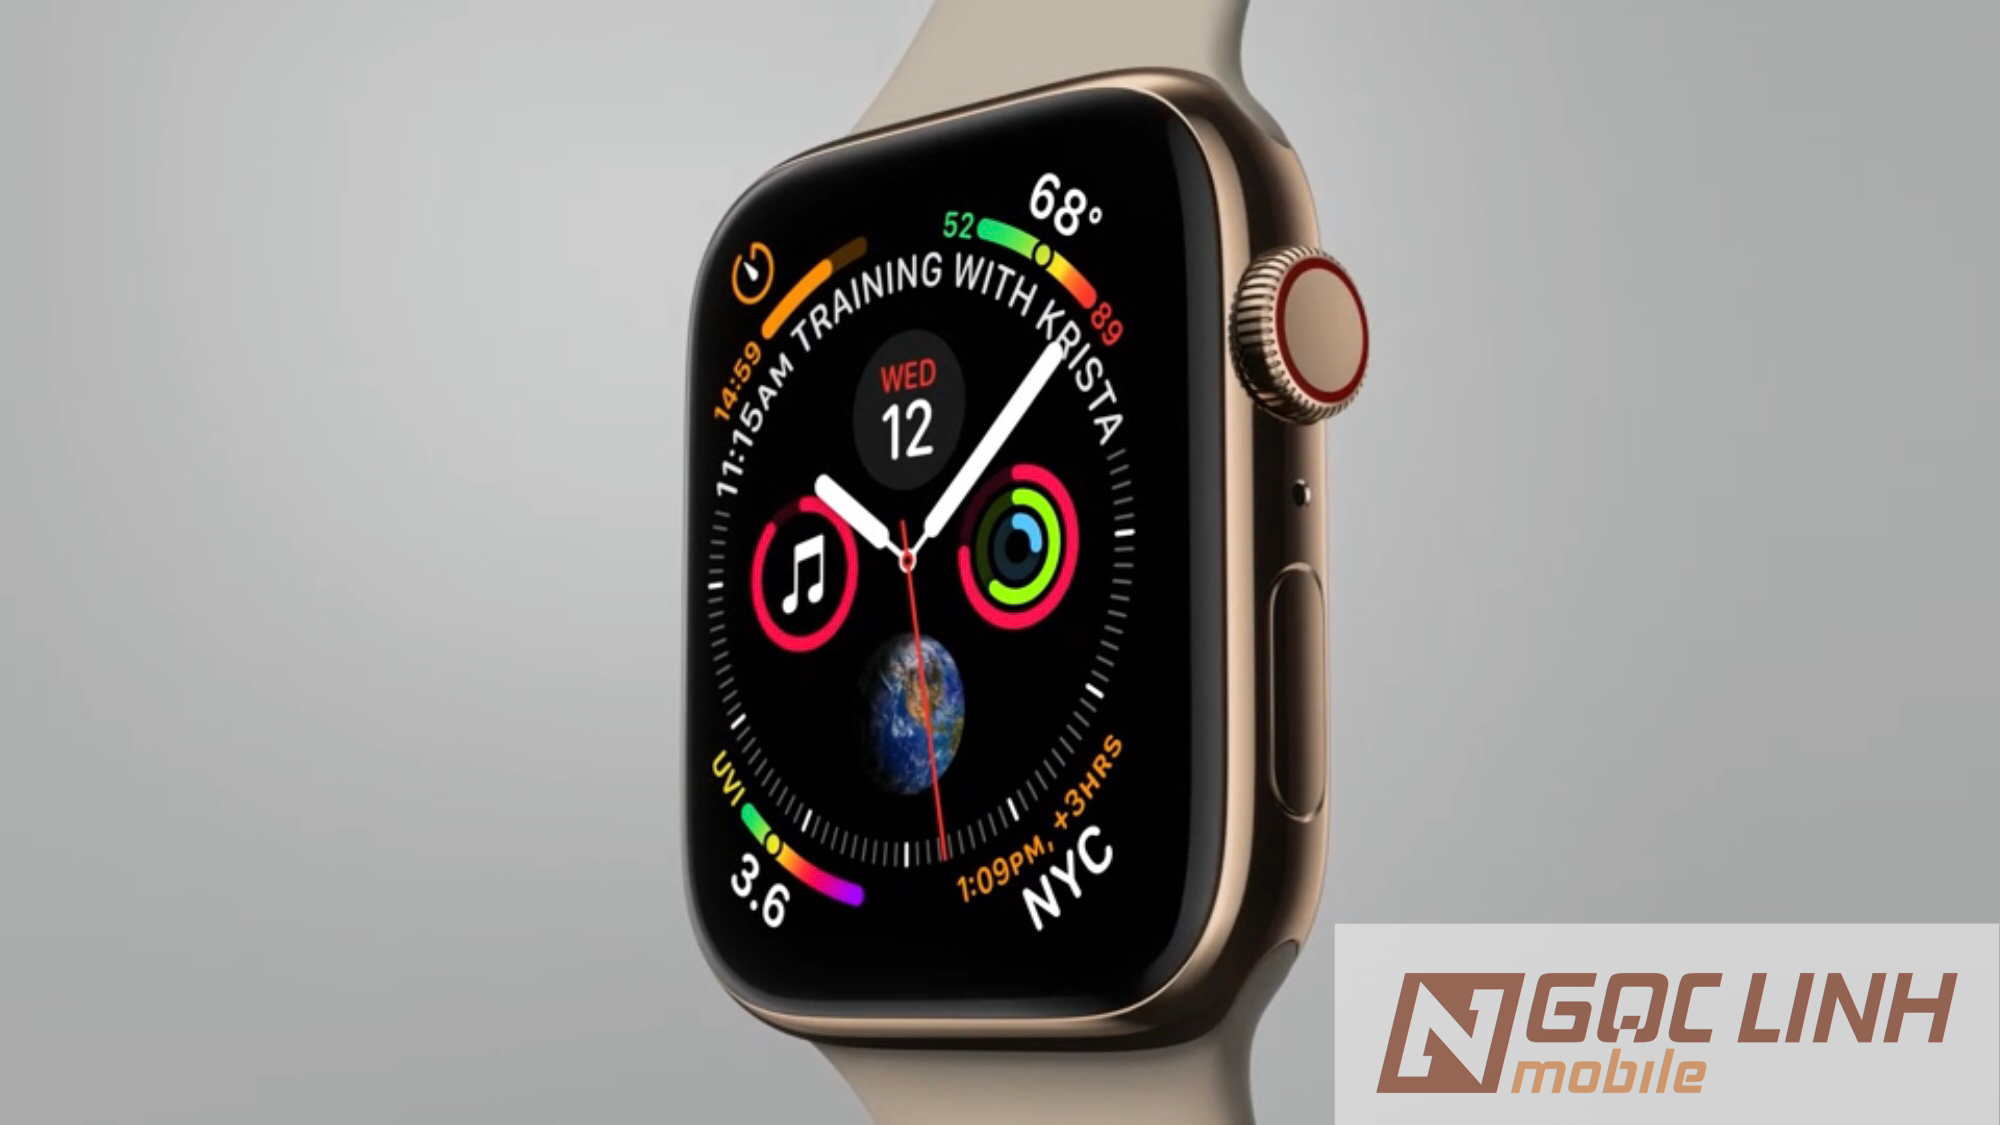 Apple Watch 4 apple watch 4 - Apple Watch 4: Bản nâng cấp đáng chờ đợi của Apple Watch